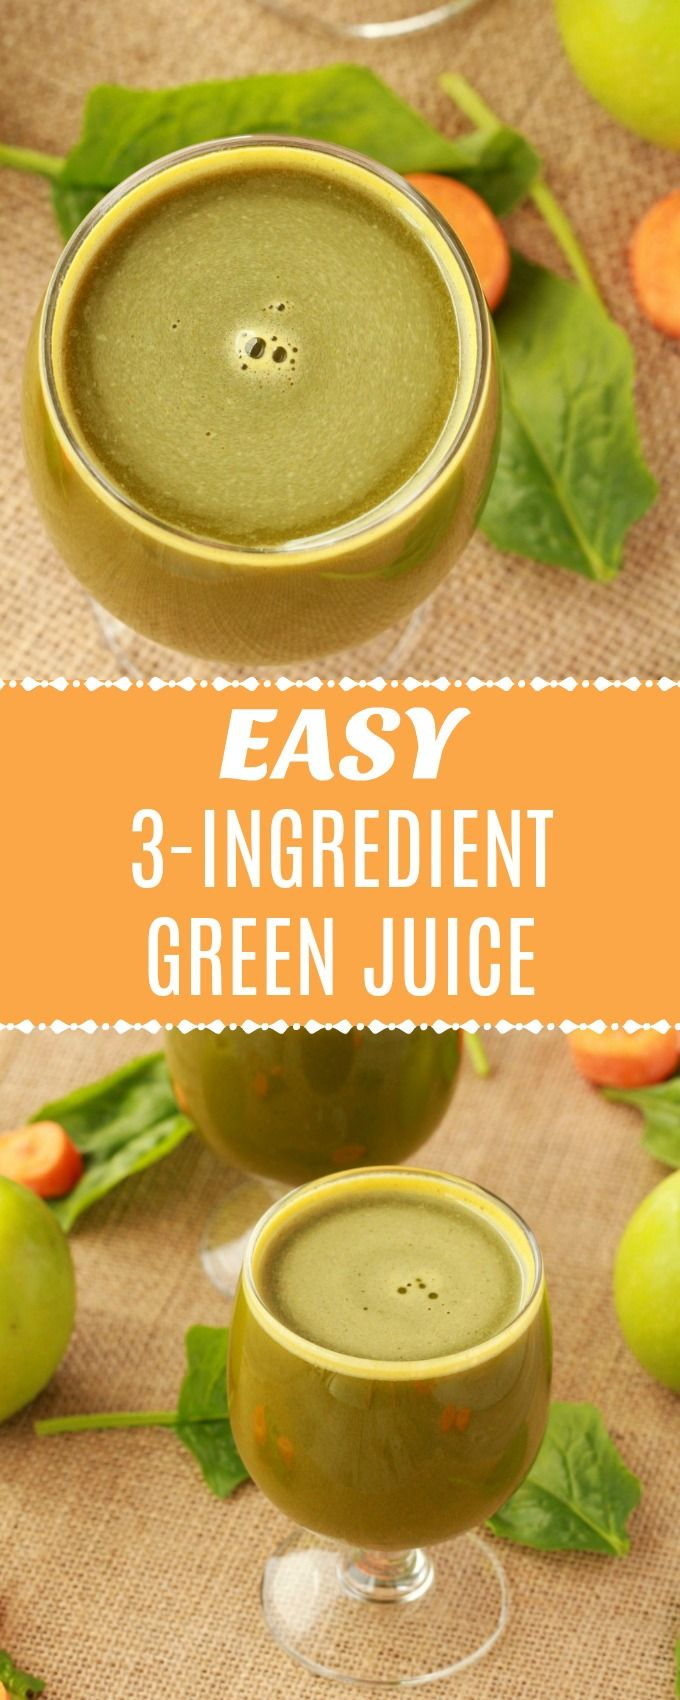 Mild and delicious 3-ingredient green juice. This perfectly sweet juice is super easy to make and extremely refreshing. Ideal for breakfast or a power snack. #vegan #lovingitvegan #greenjuice #juicing #rawvegan | lovingitvegan.com